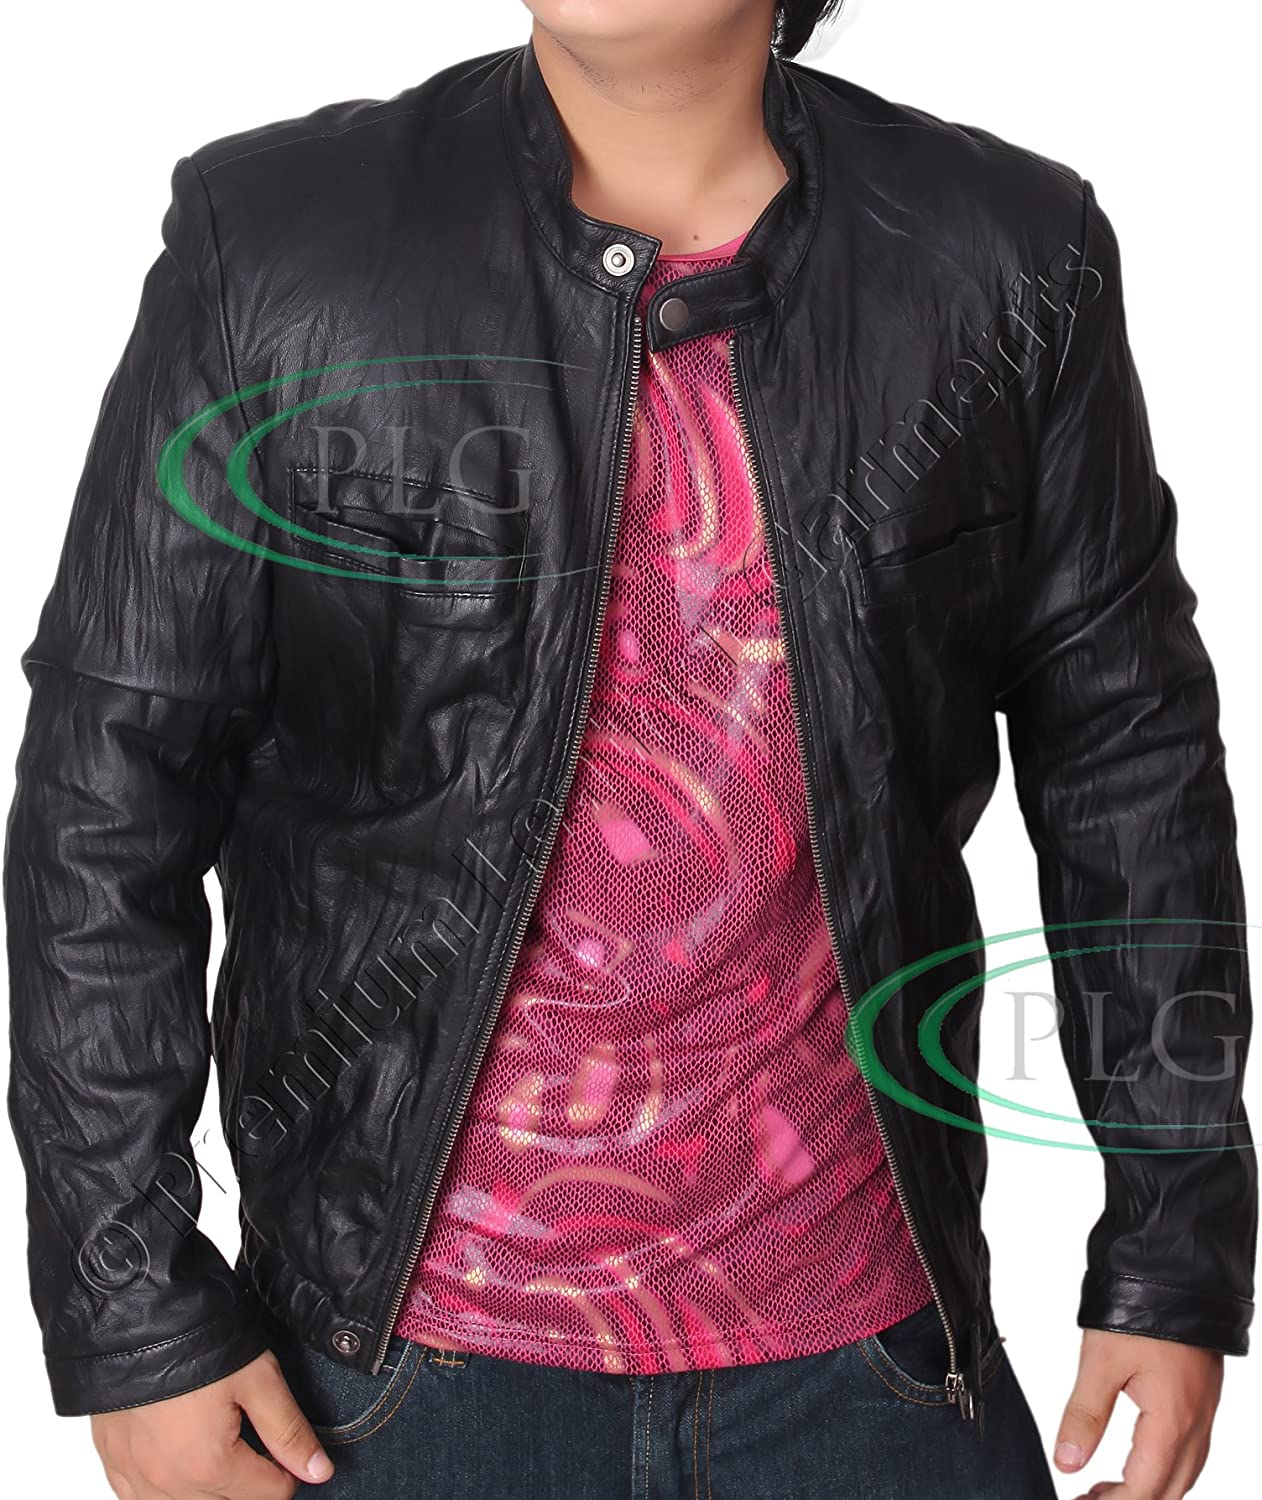 Zac Efron Summer Leather Jacket - 17 Again OBLOW Leather Jacket